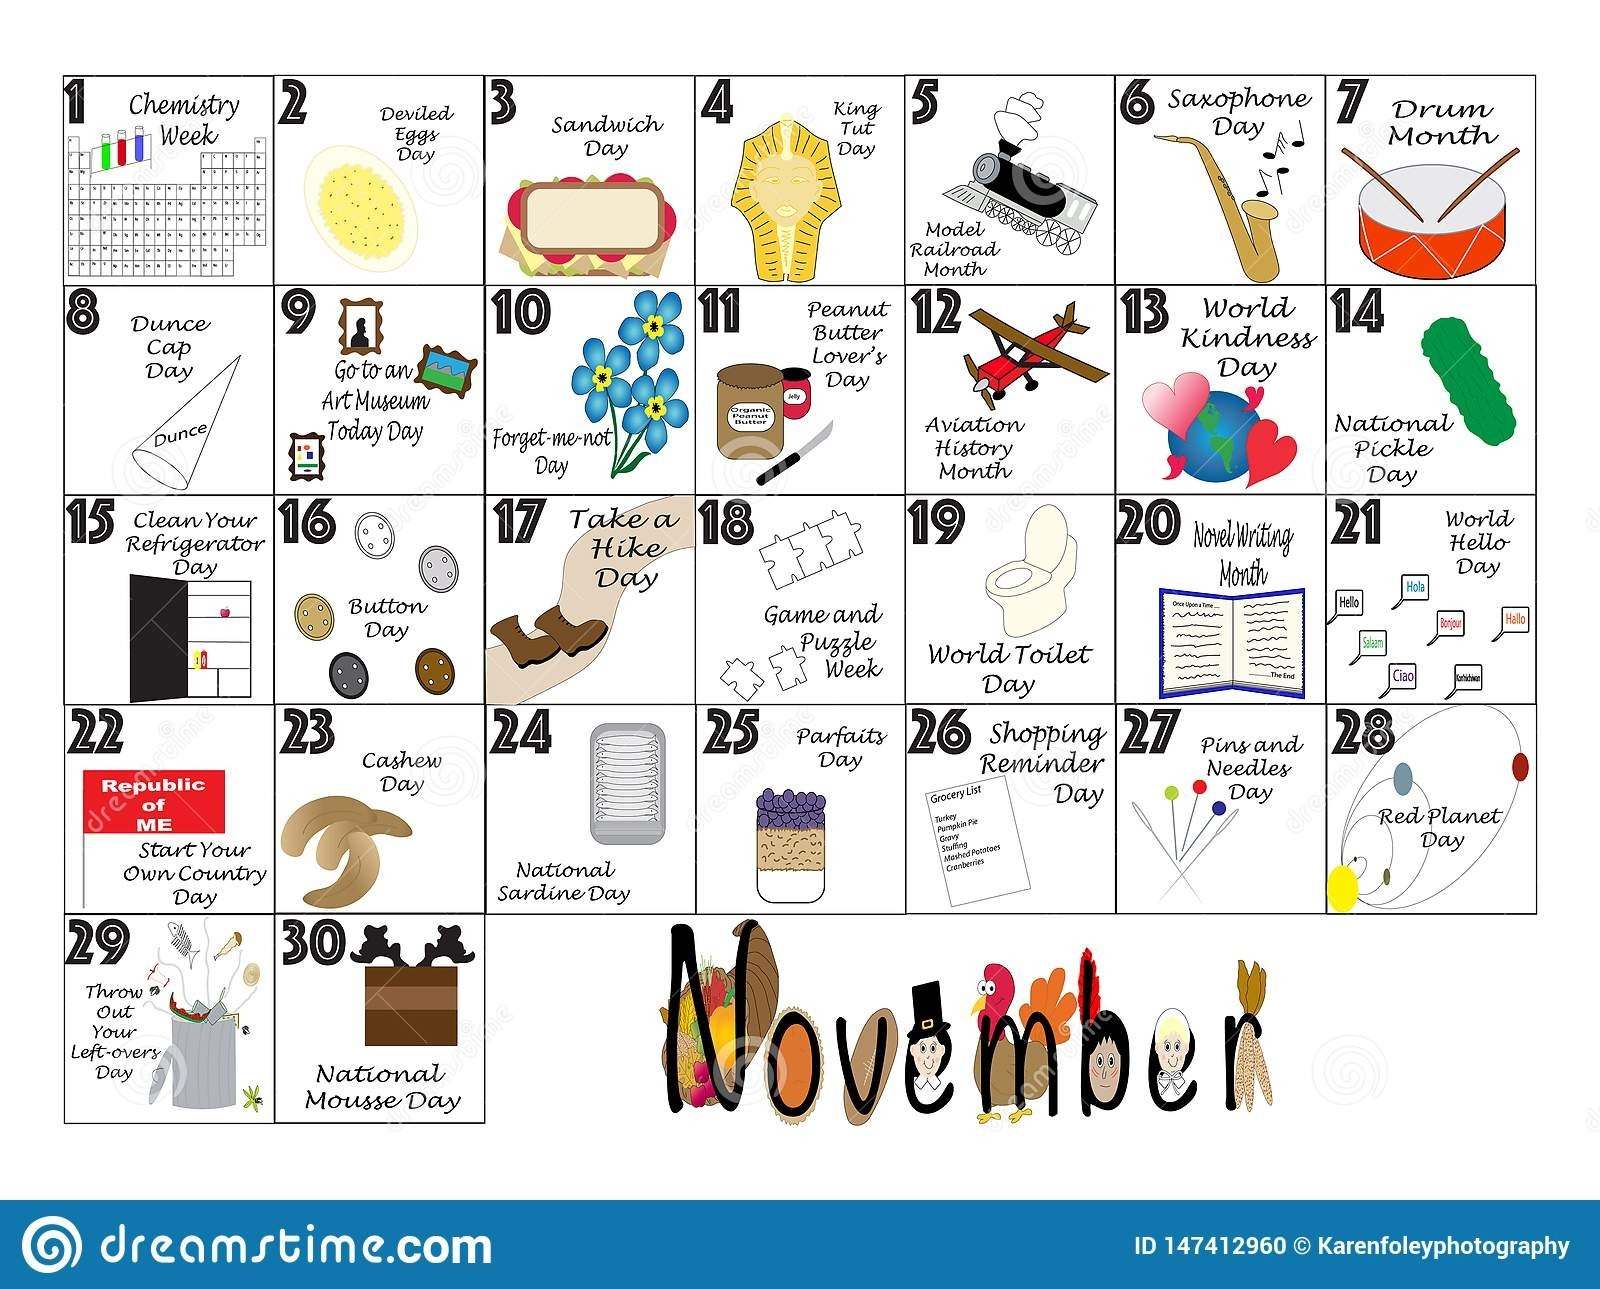 November 2020 Quirky Holidays And Unusual Celebrations  November Clipart 2020